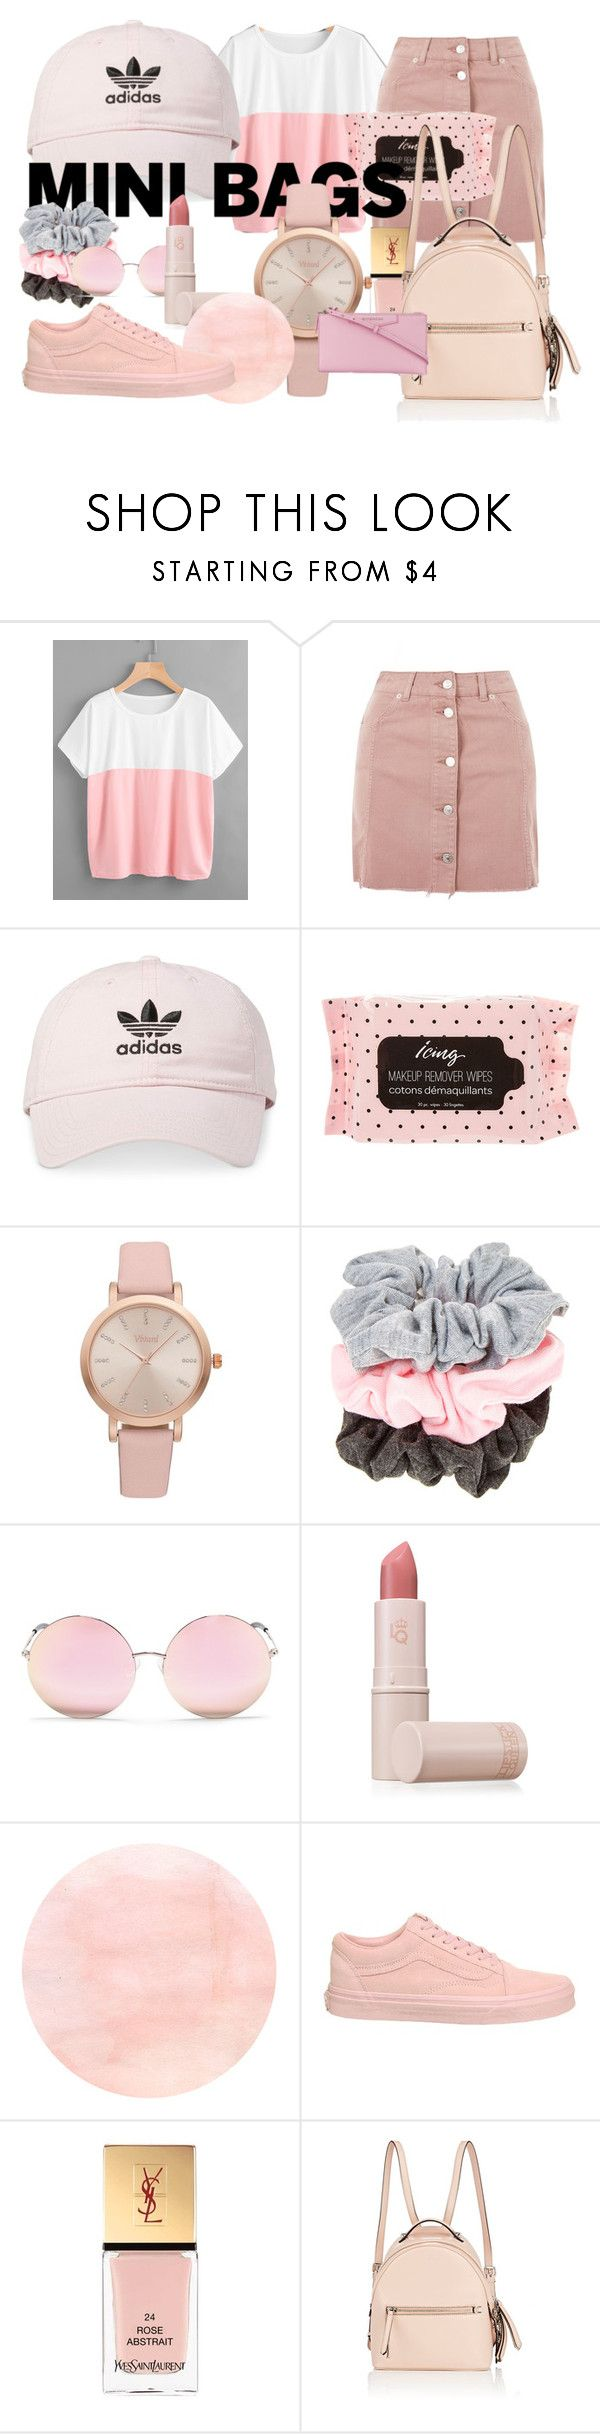 """""""too much pink? never"""" by makennafagrell ❤ liked on Polyvore featuring Topshop, adidas, Vivani, Matthew Williamson, Lipstick Queen, Vans, Yves Saint Laurent, Fendi and Givenchy"""